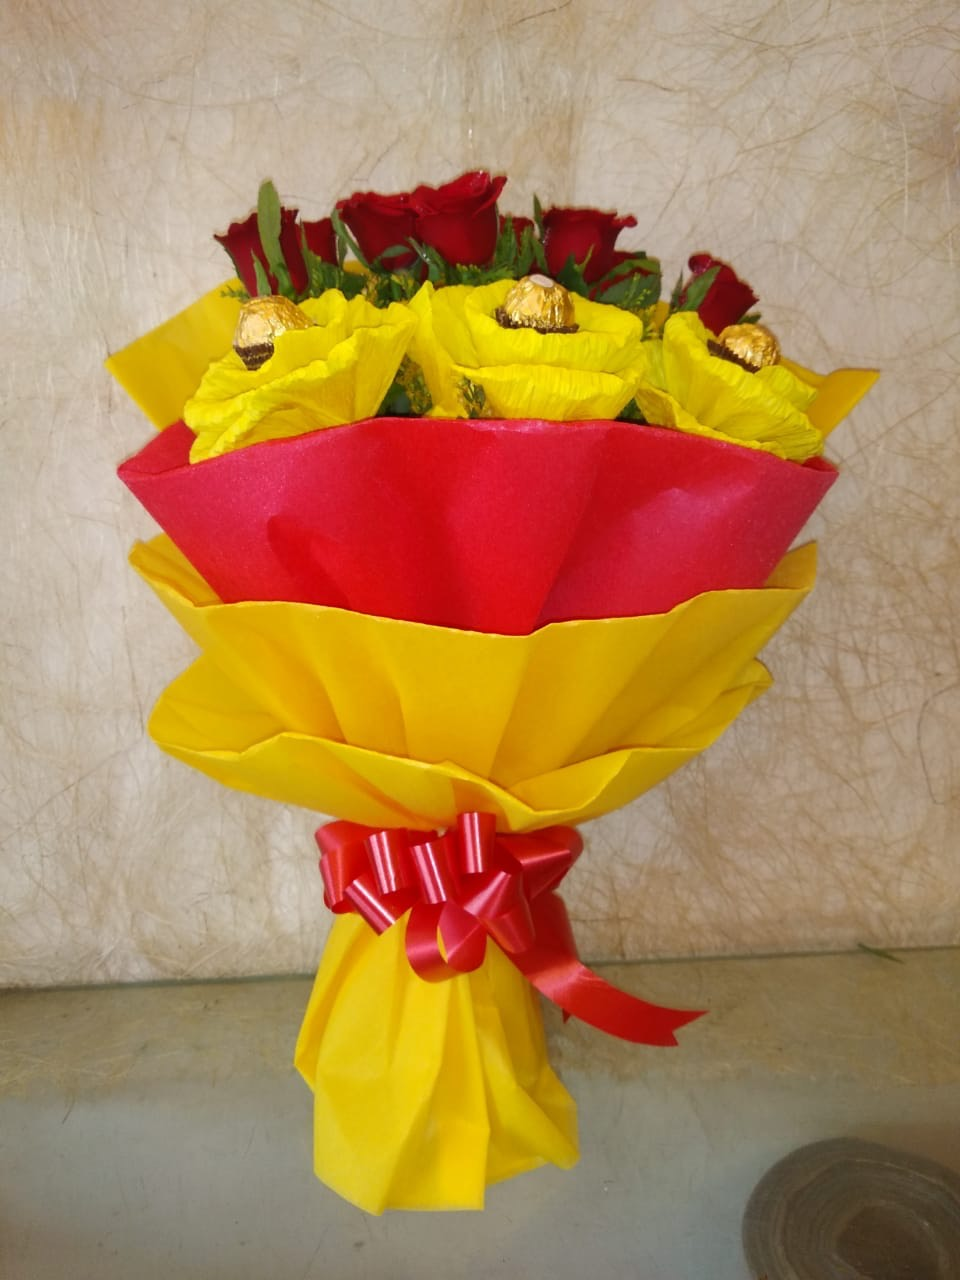 Flowers Delivery in Sector 51 GurgaonRed Roses Ferrero Rocher Bunch